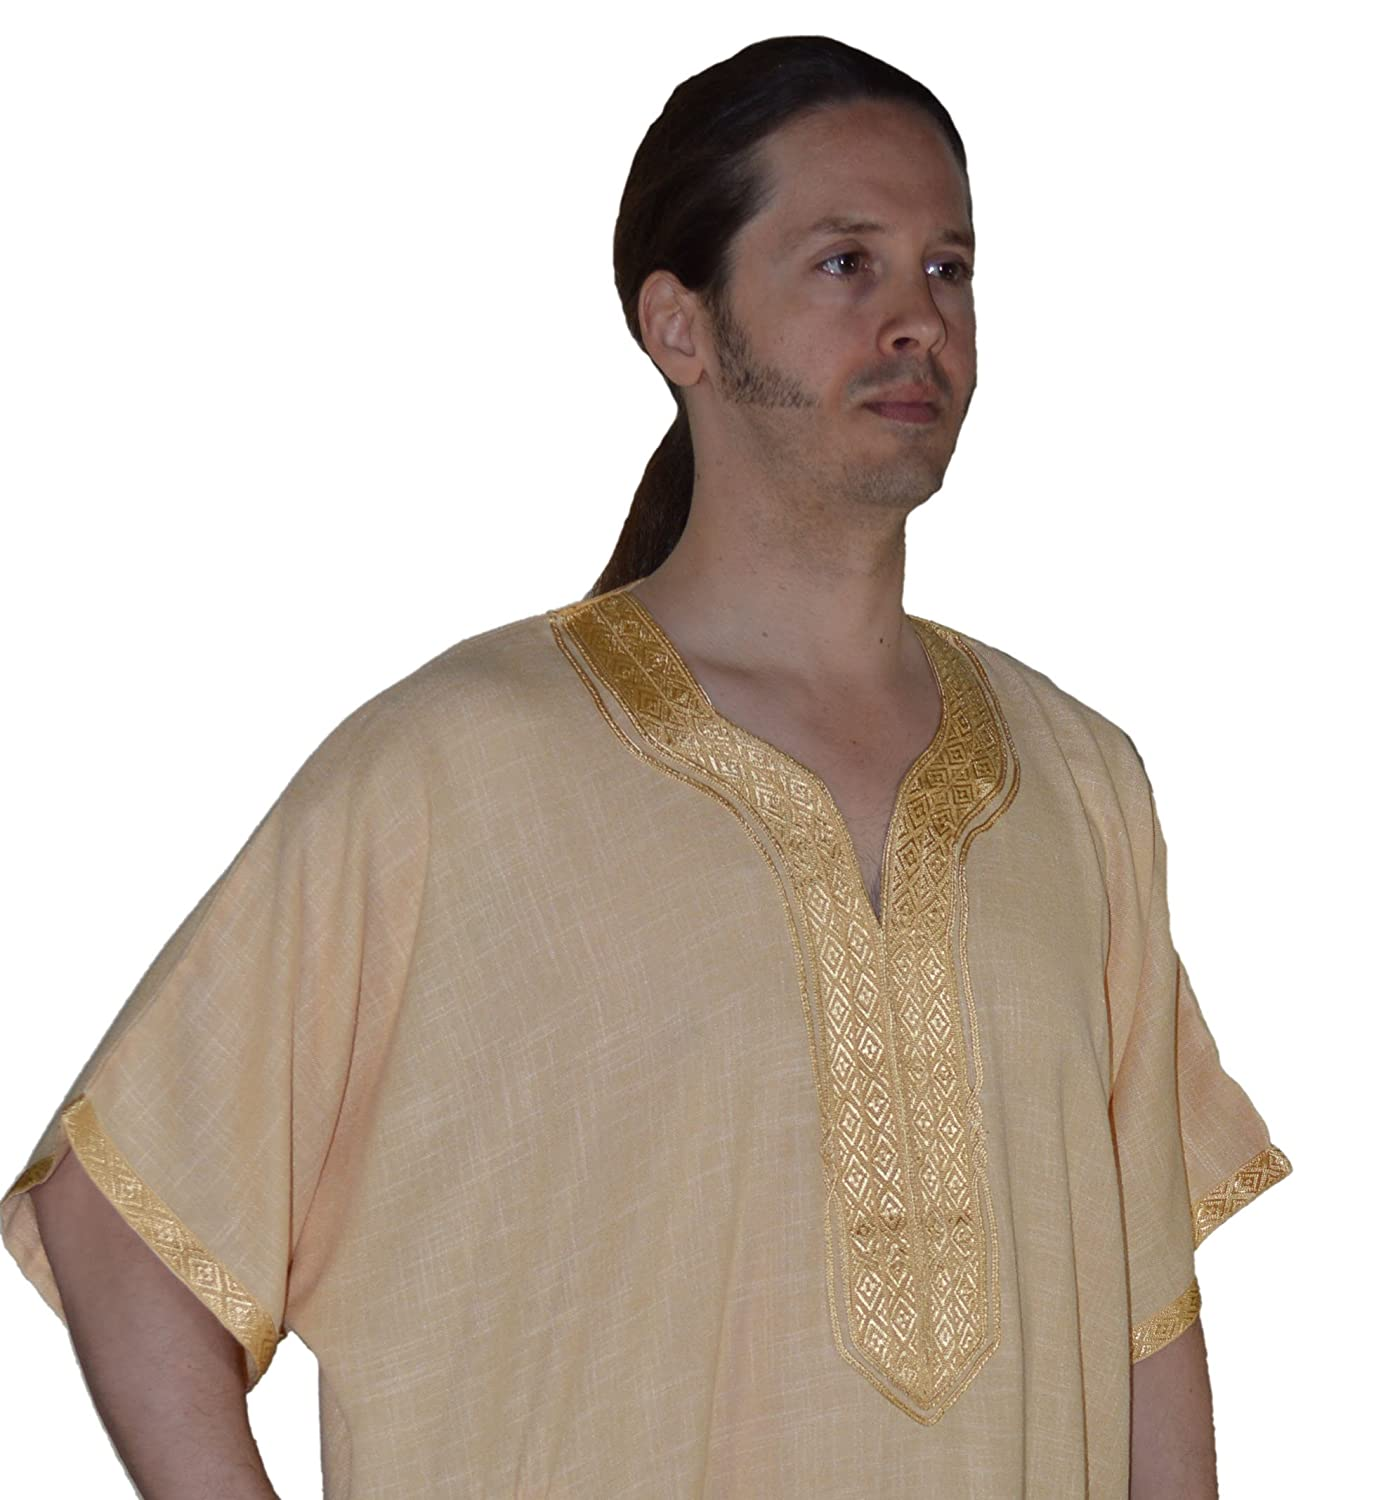 1baa75f9ca4e Amazon.com : Moroccan Men Clothing Hand made Djellaba Gandoura One Size  Gold : Everything Else